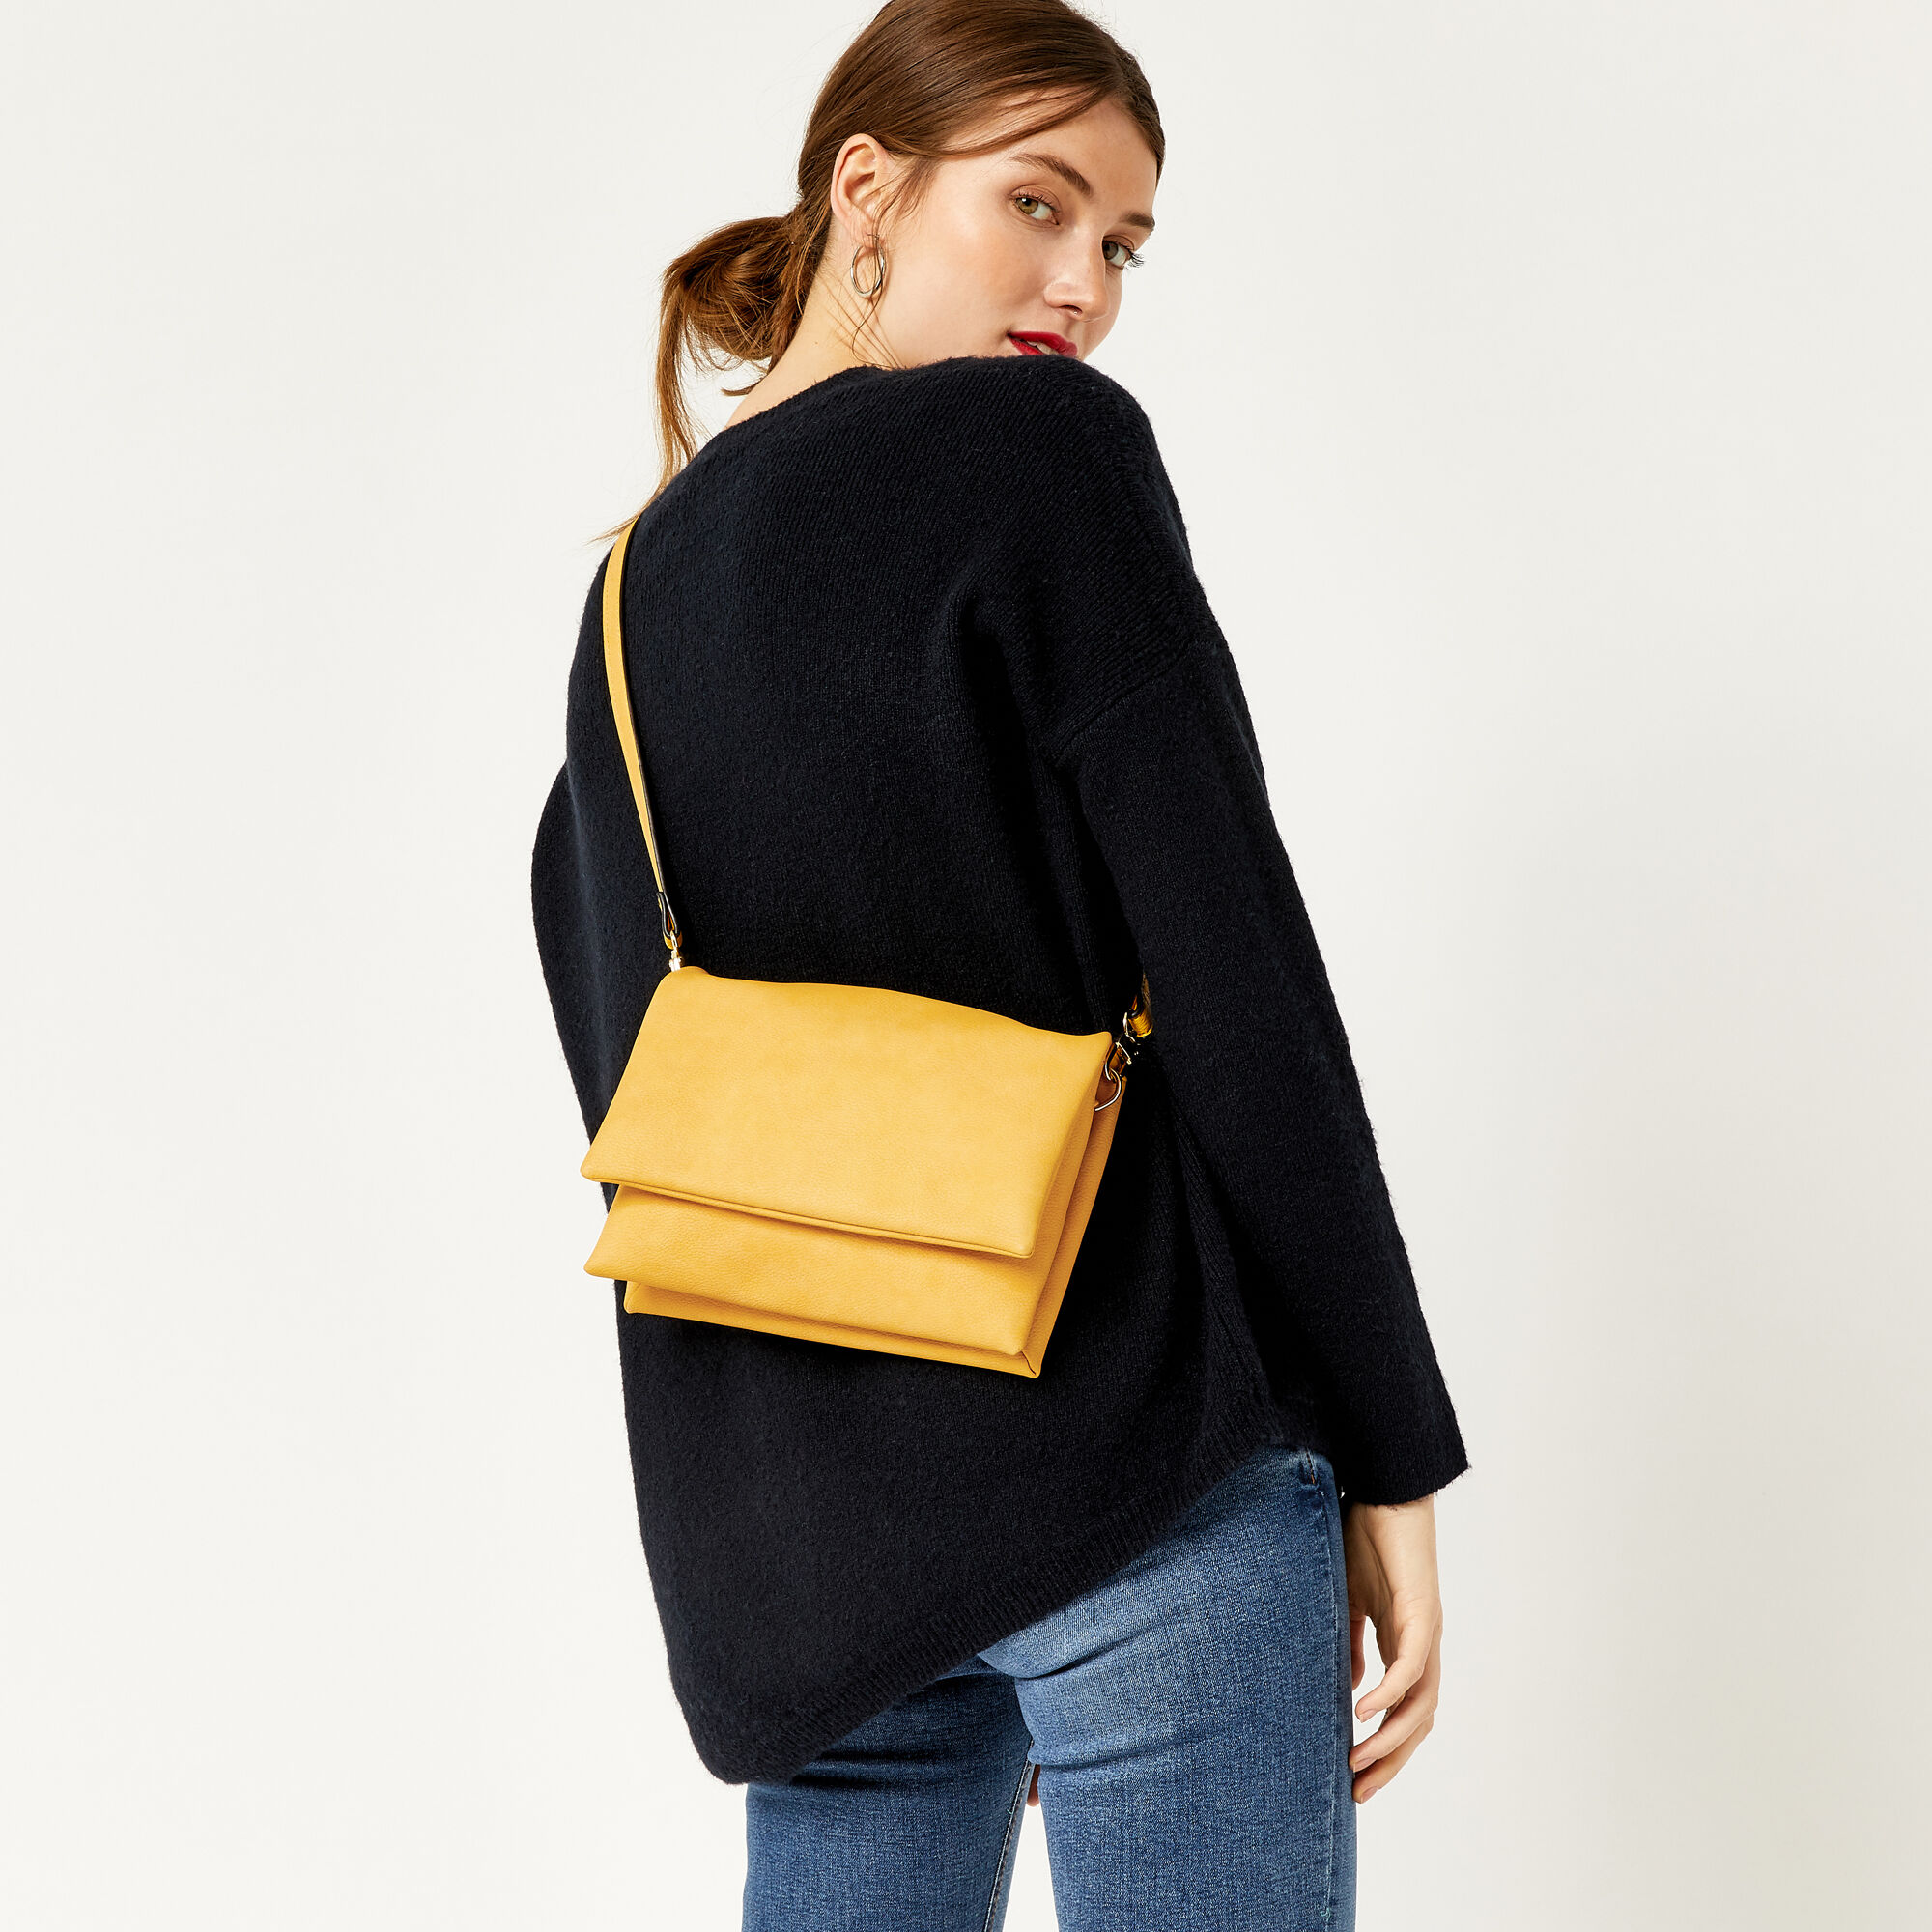 Warehouse, DOUBLE COMPARTMENT CROSSBODY Yellow 1